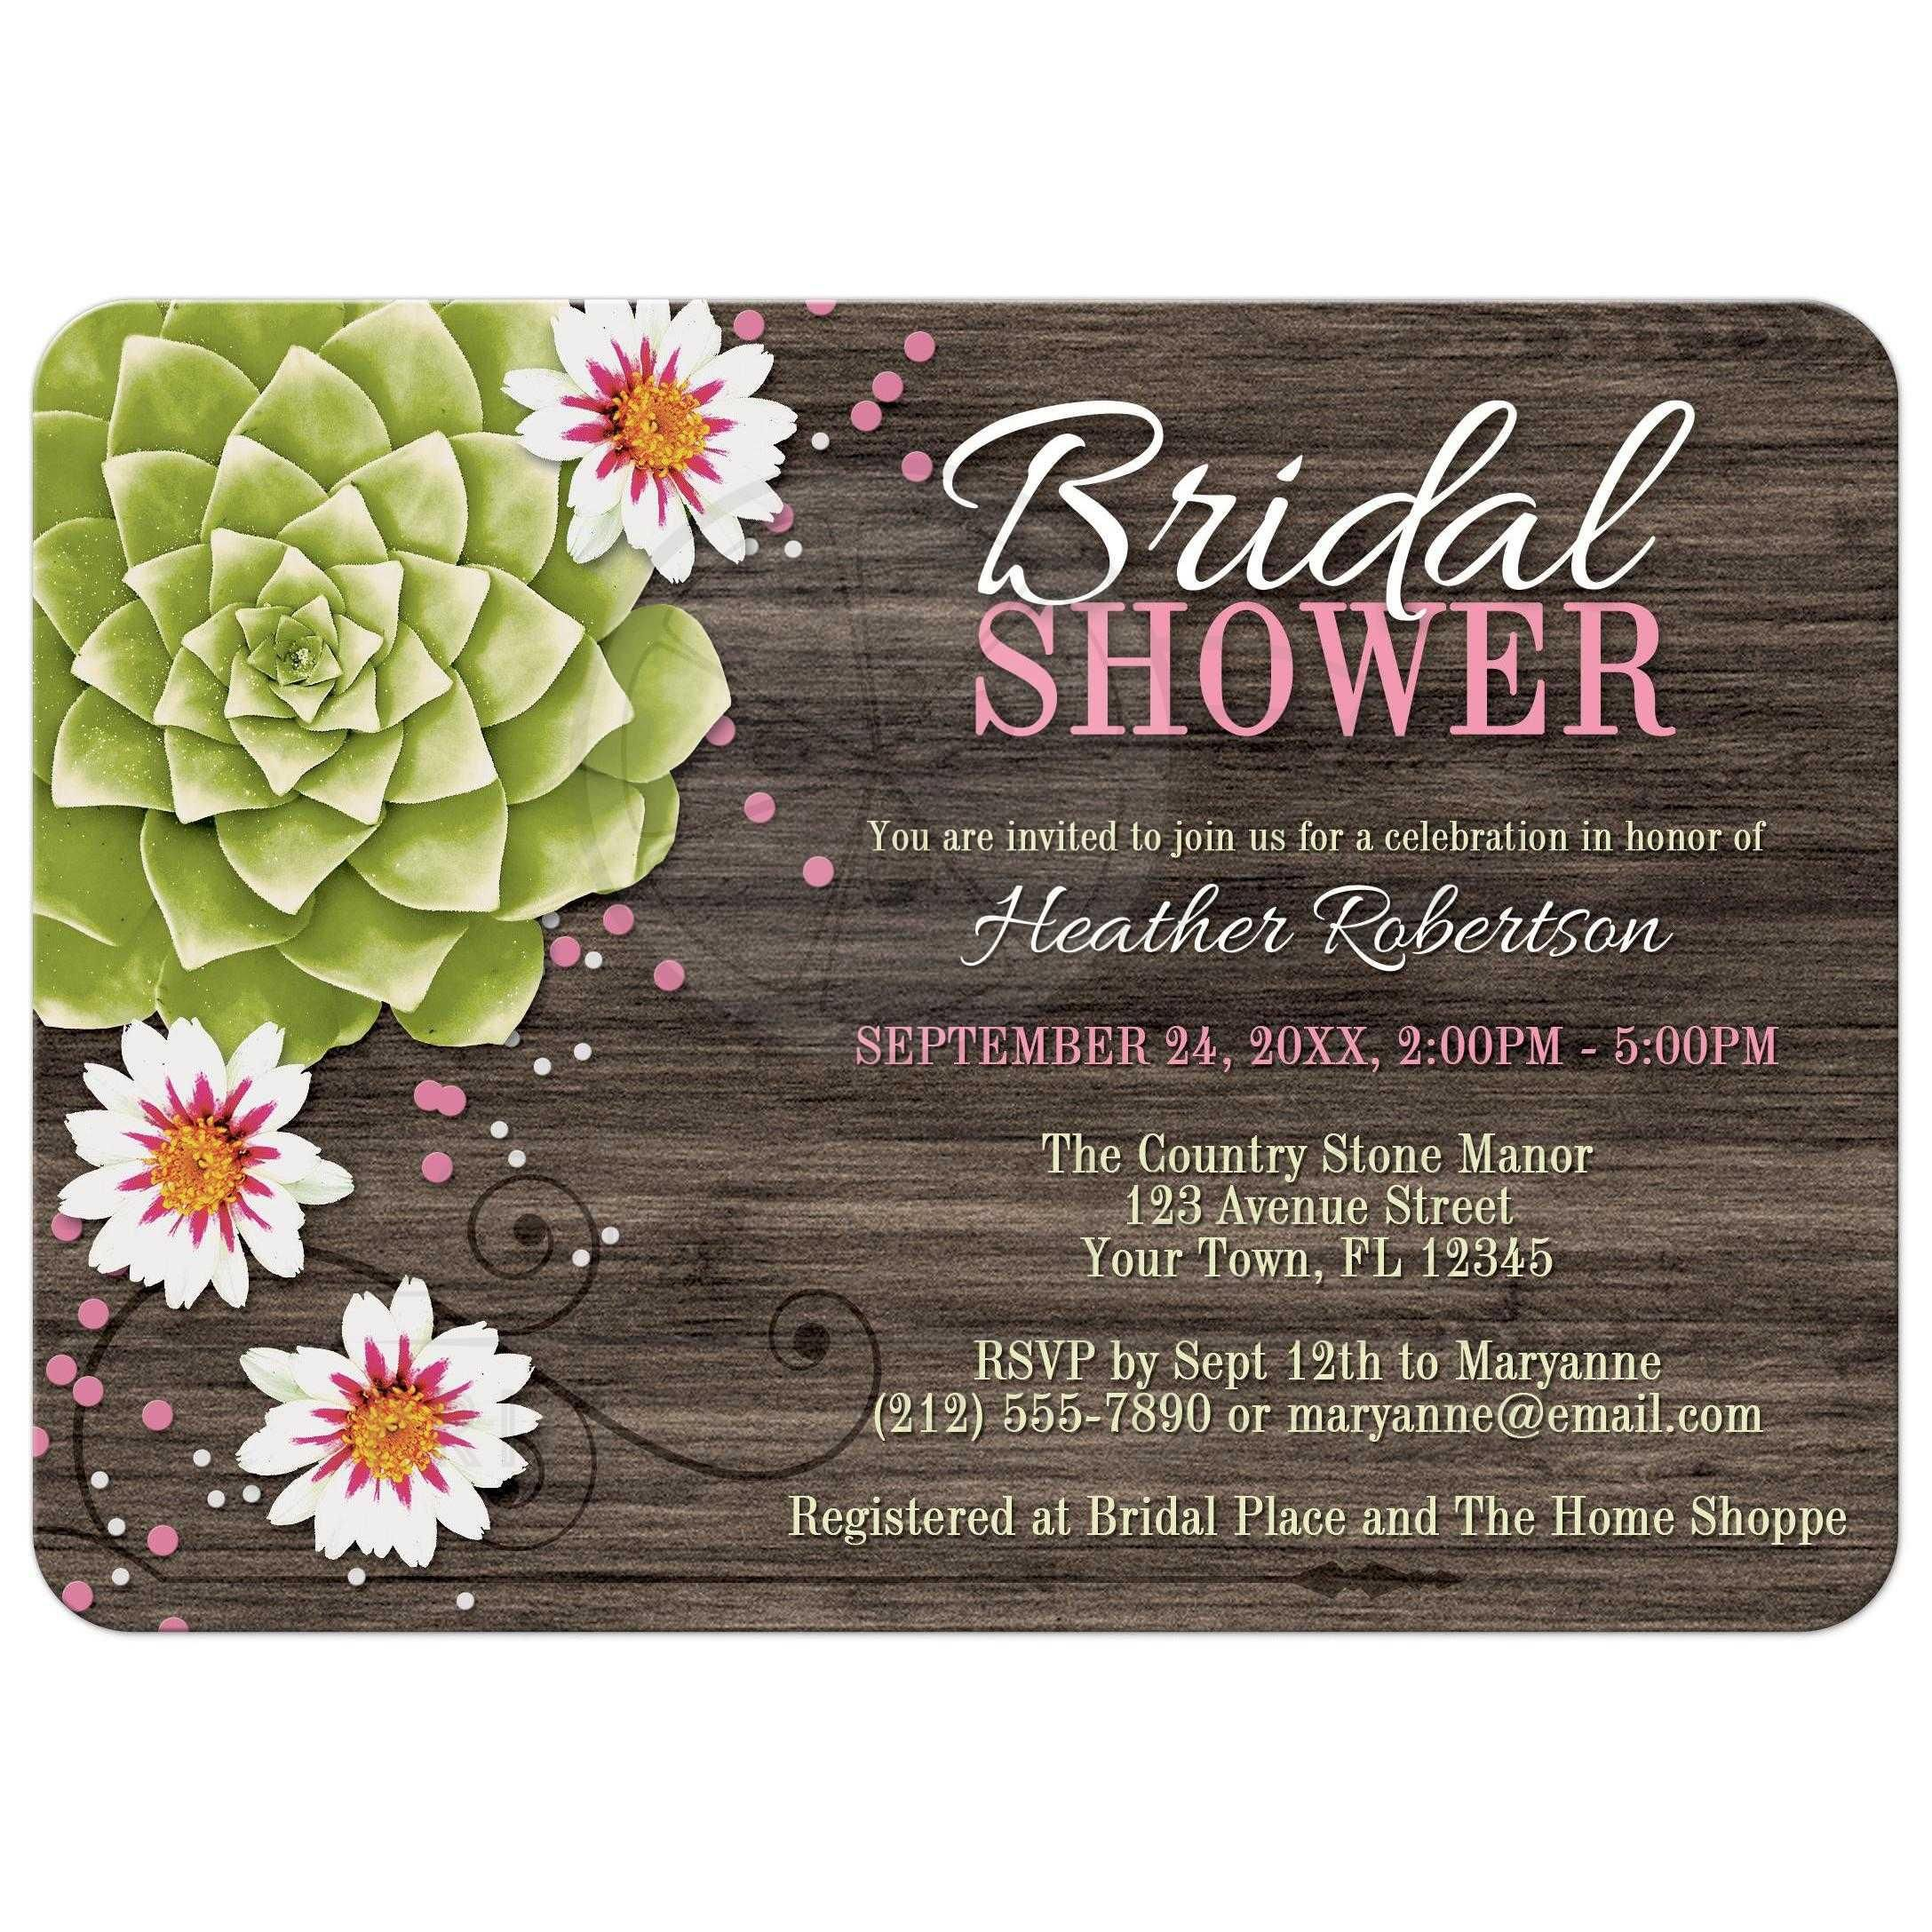 Bridal Shower Invitations Walmart. Bridal Shower Invitations Walmart   Invitation Templates